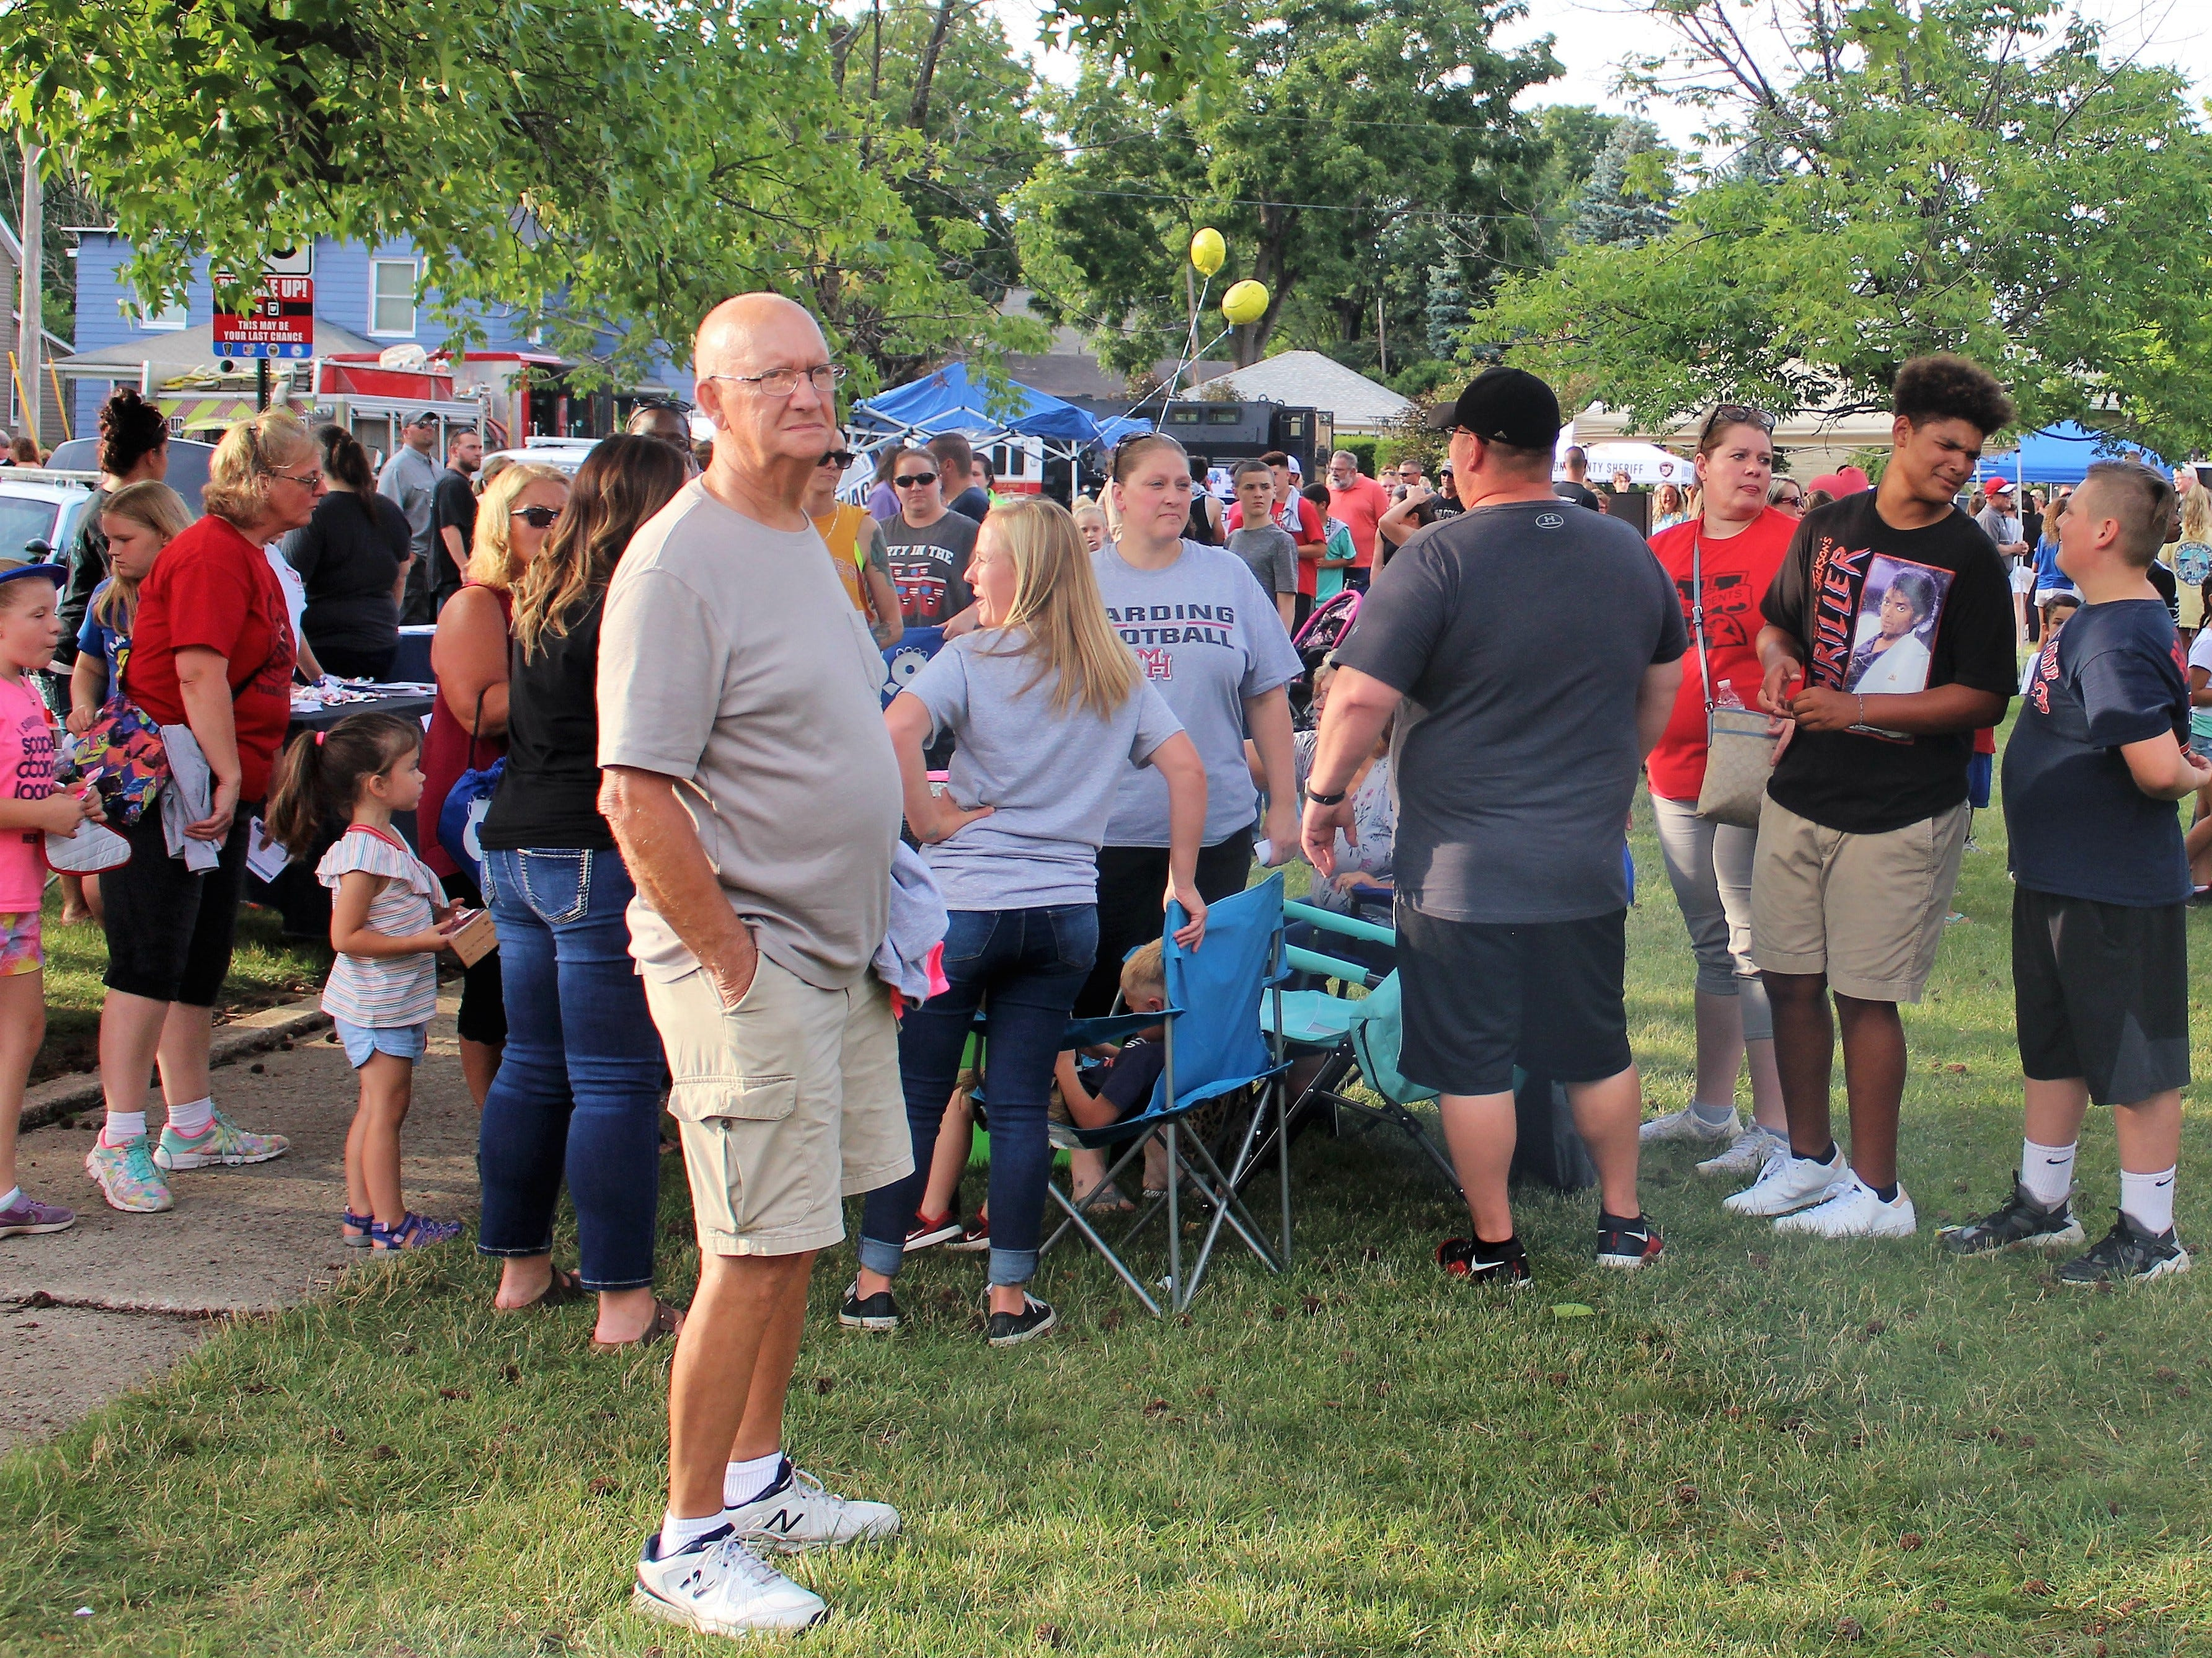 Marion residents frequented food trucks as a live band played in the background at Grant Middle School on Tuesday.